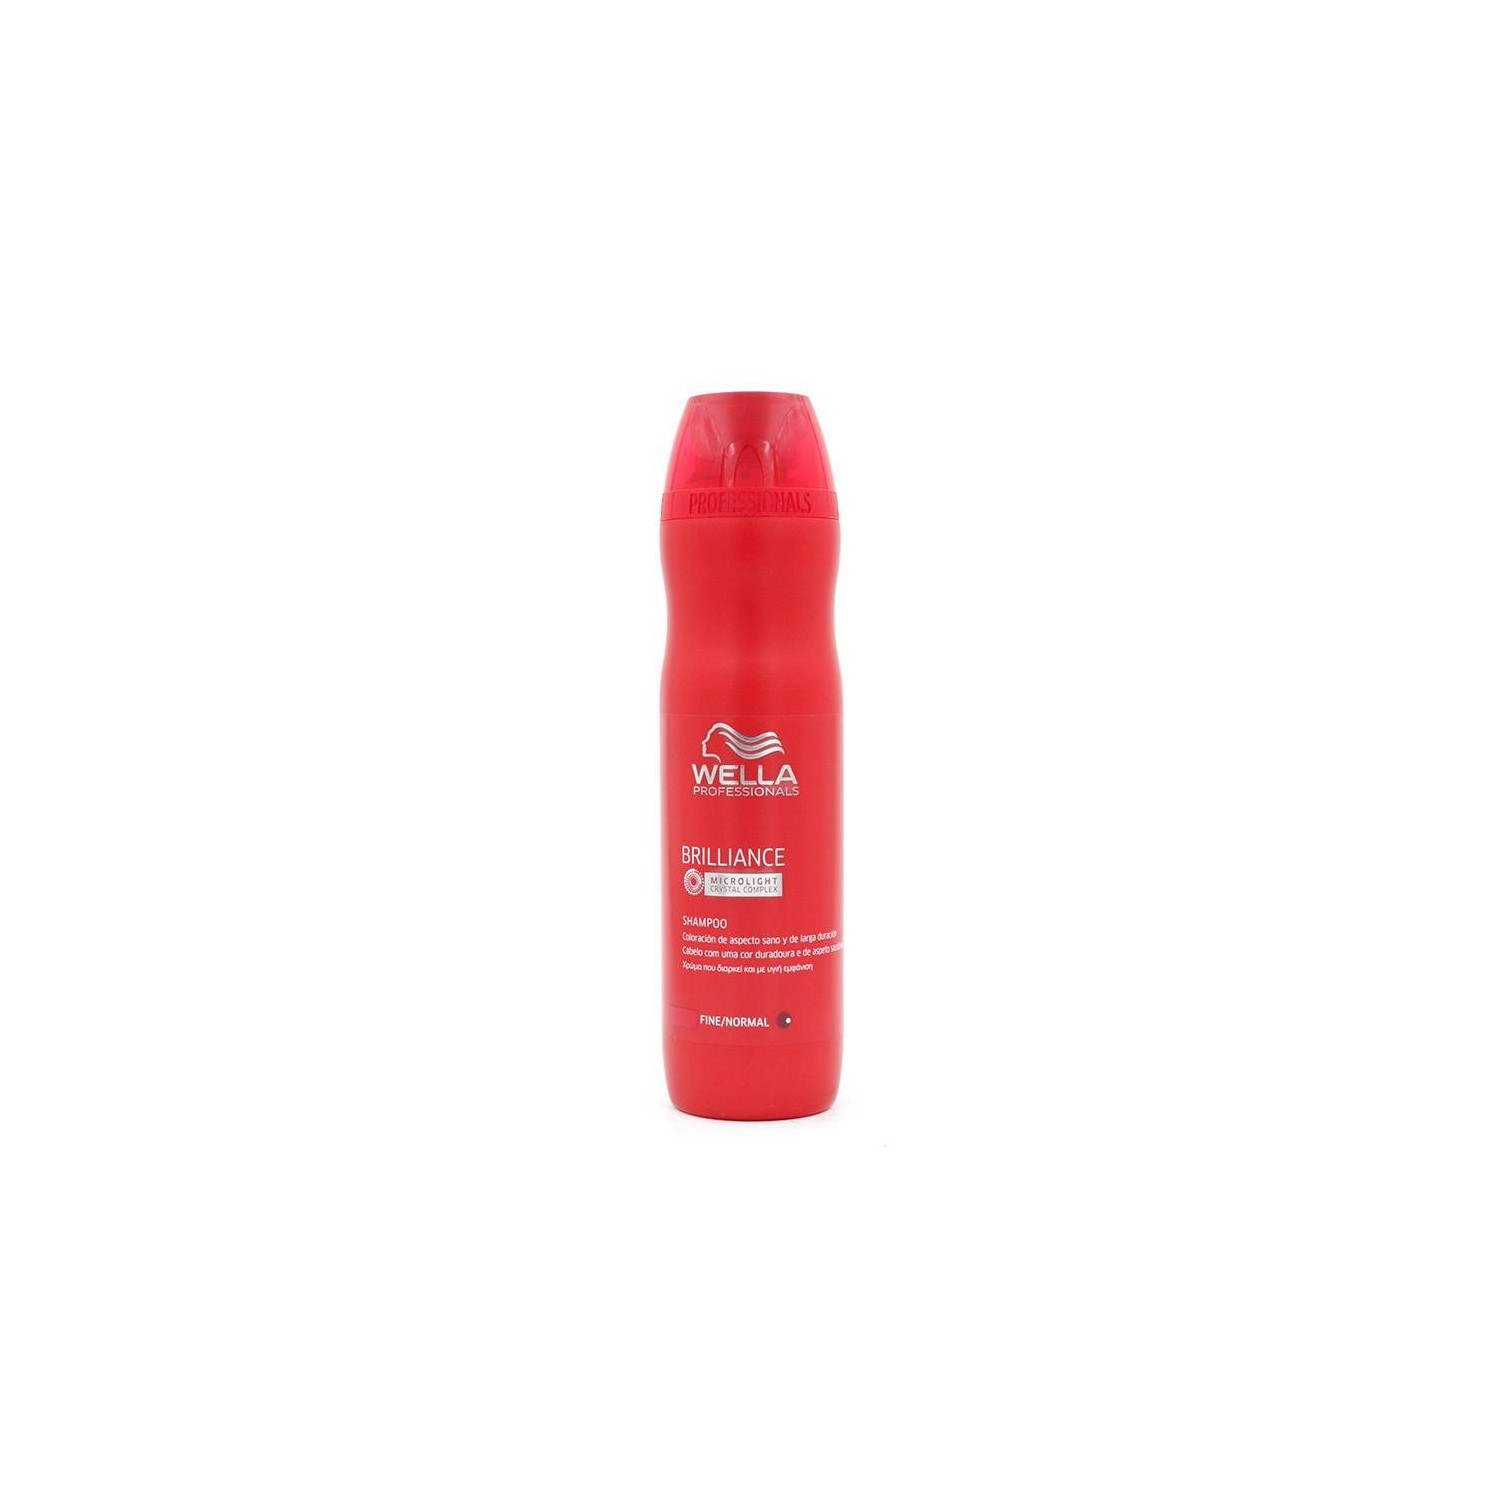 WELLA BRILLIANCE CHAMPÚ CABELLO NORMAL/FINO 250 ml